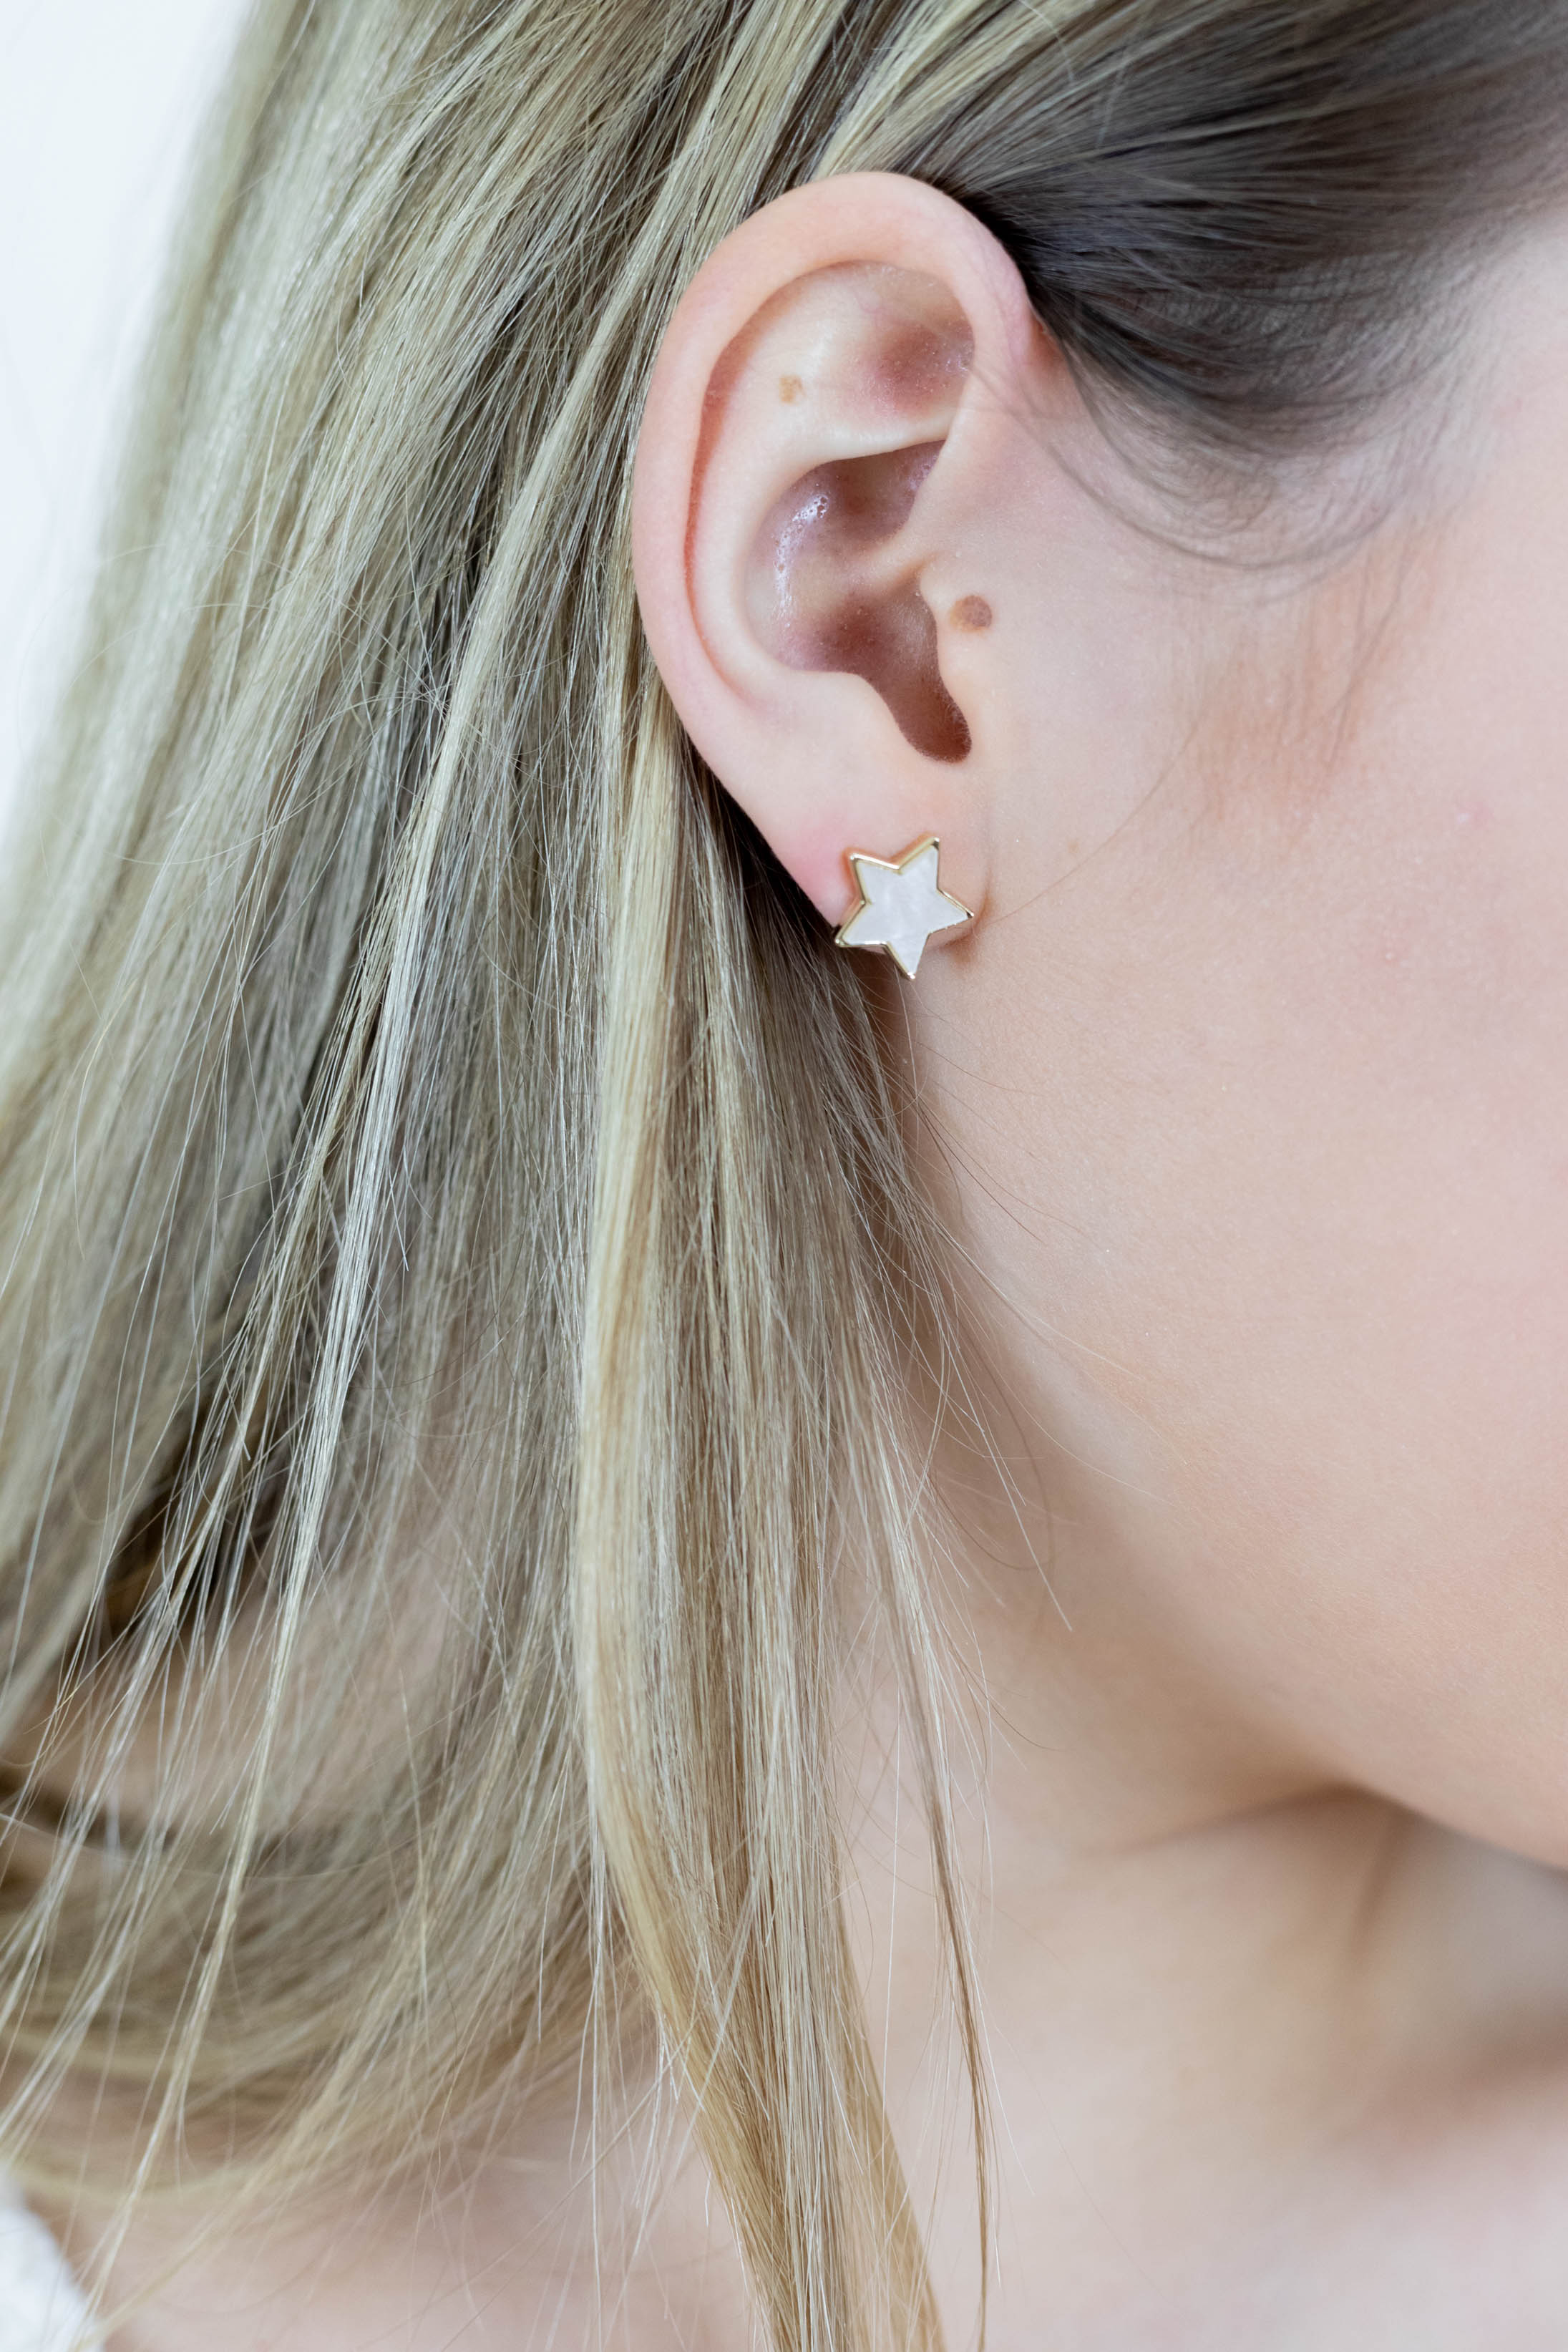 Star Gazing Stud Earrings